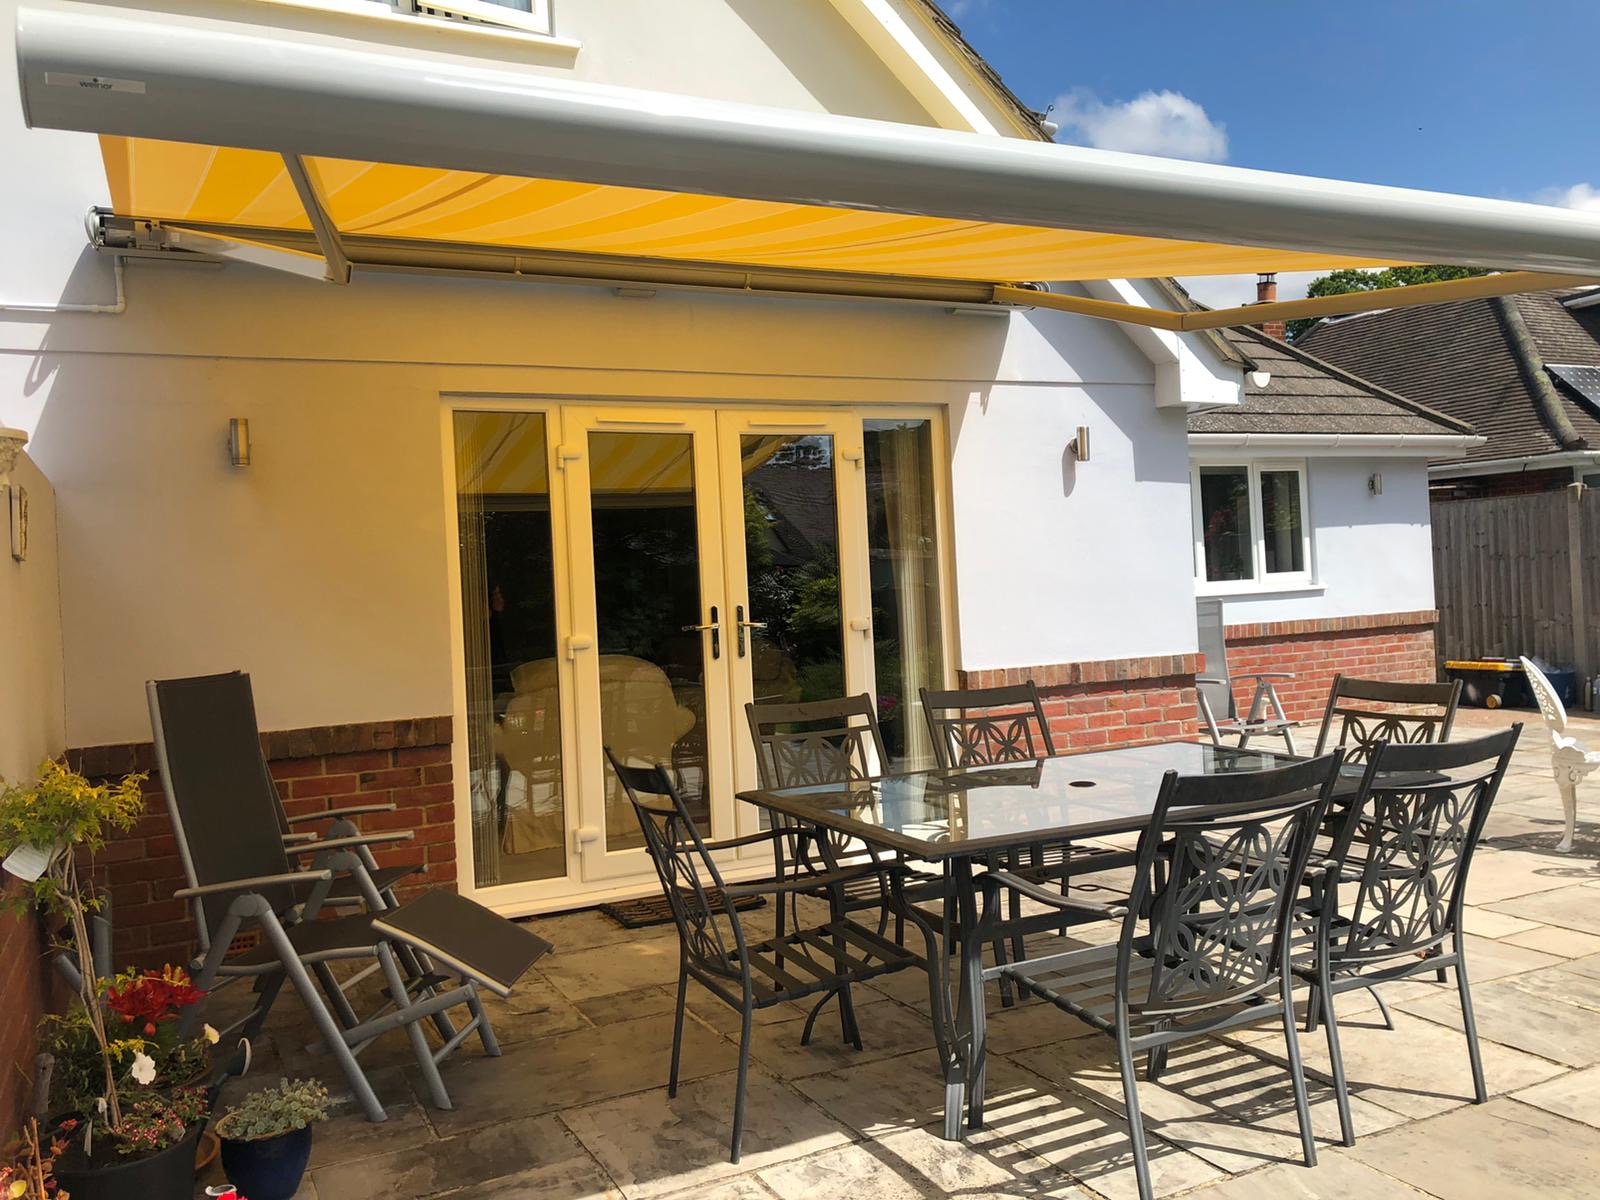 Weinor Opal Awning Fitted in Ferdown Dorset - Awningsouth